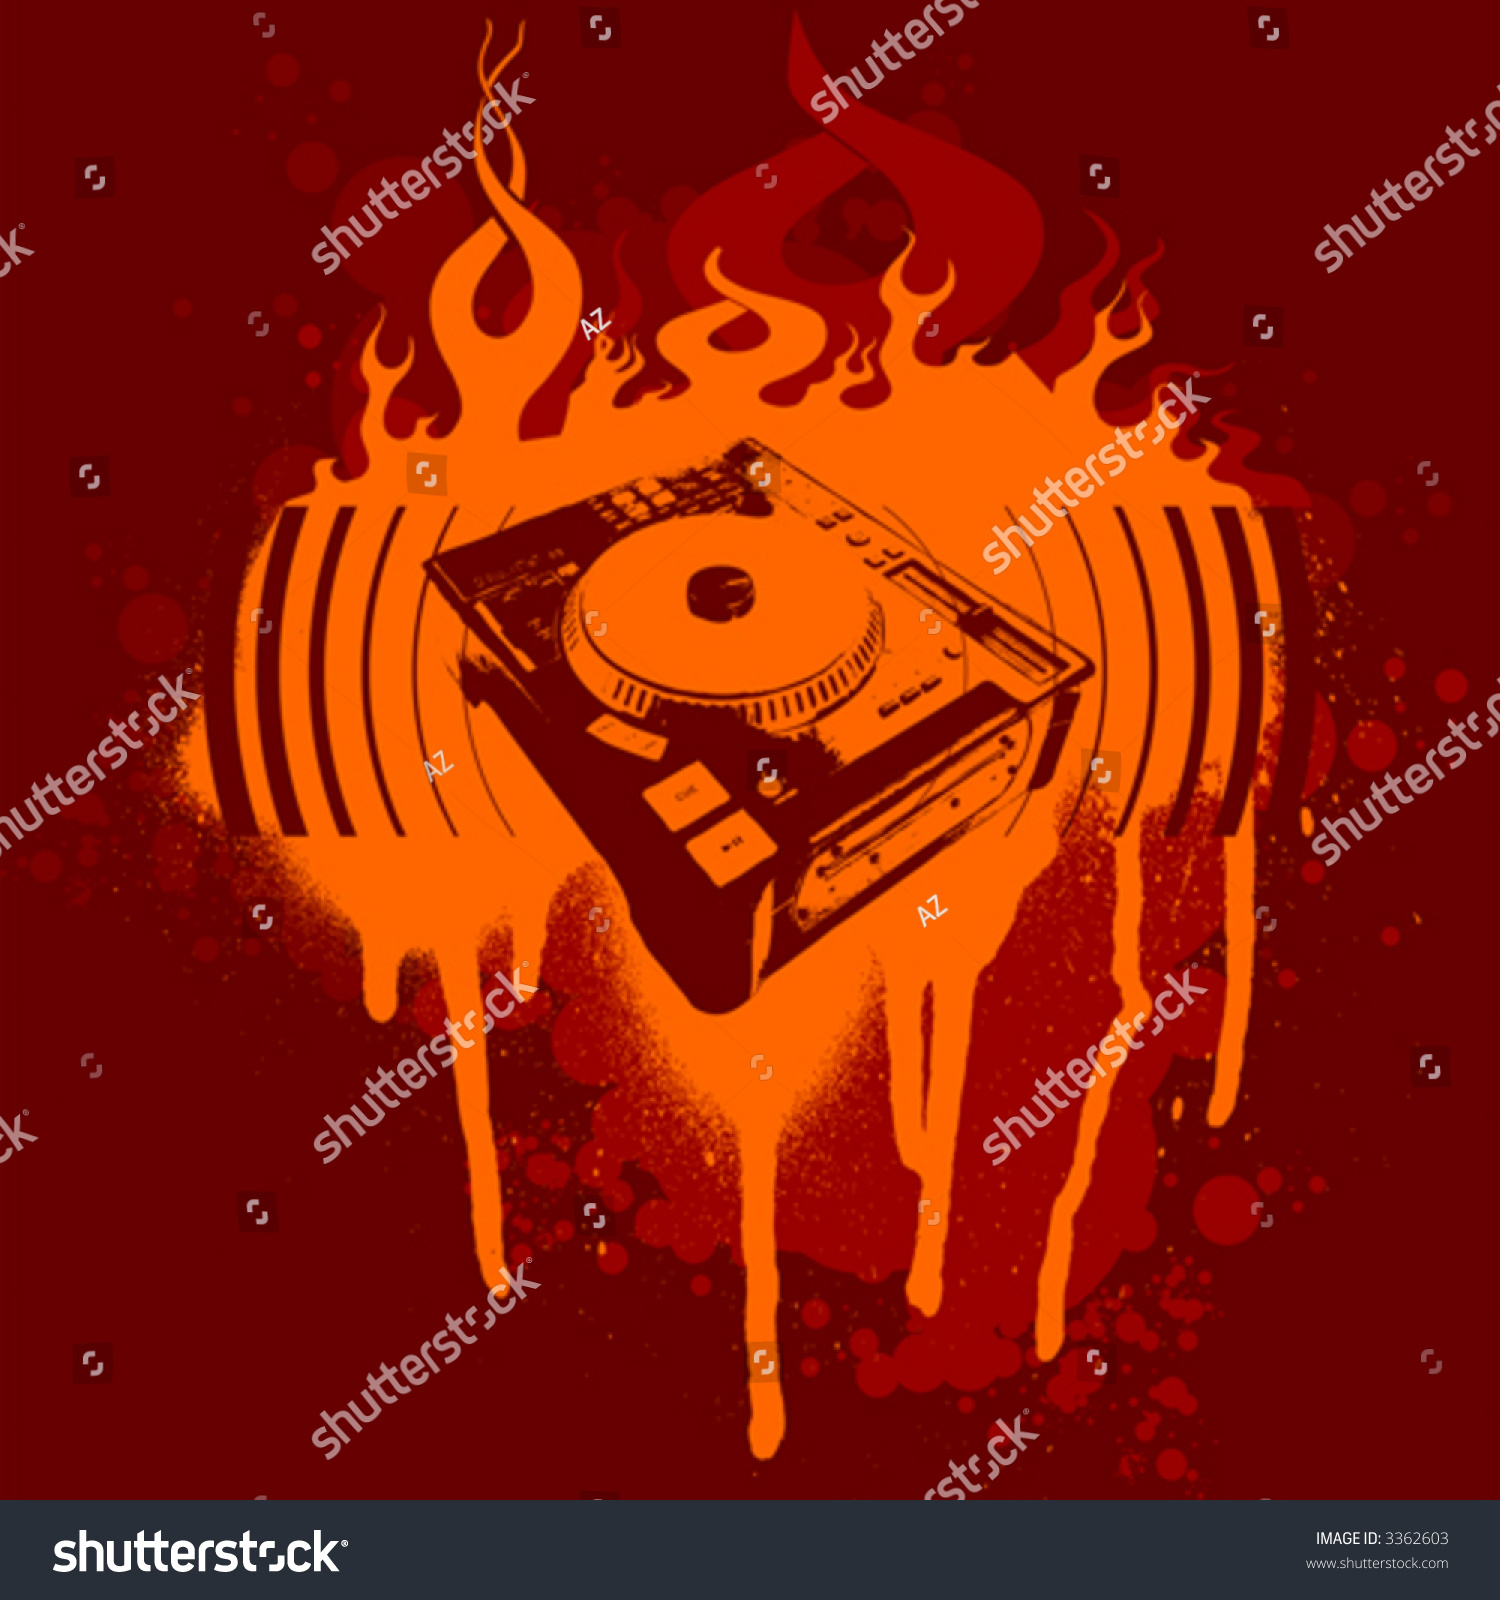 Turntable red graffiti vector illustration no meshes stock photo